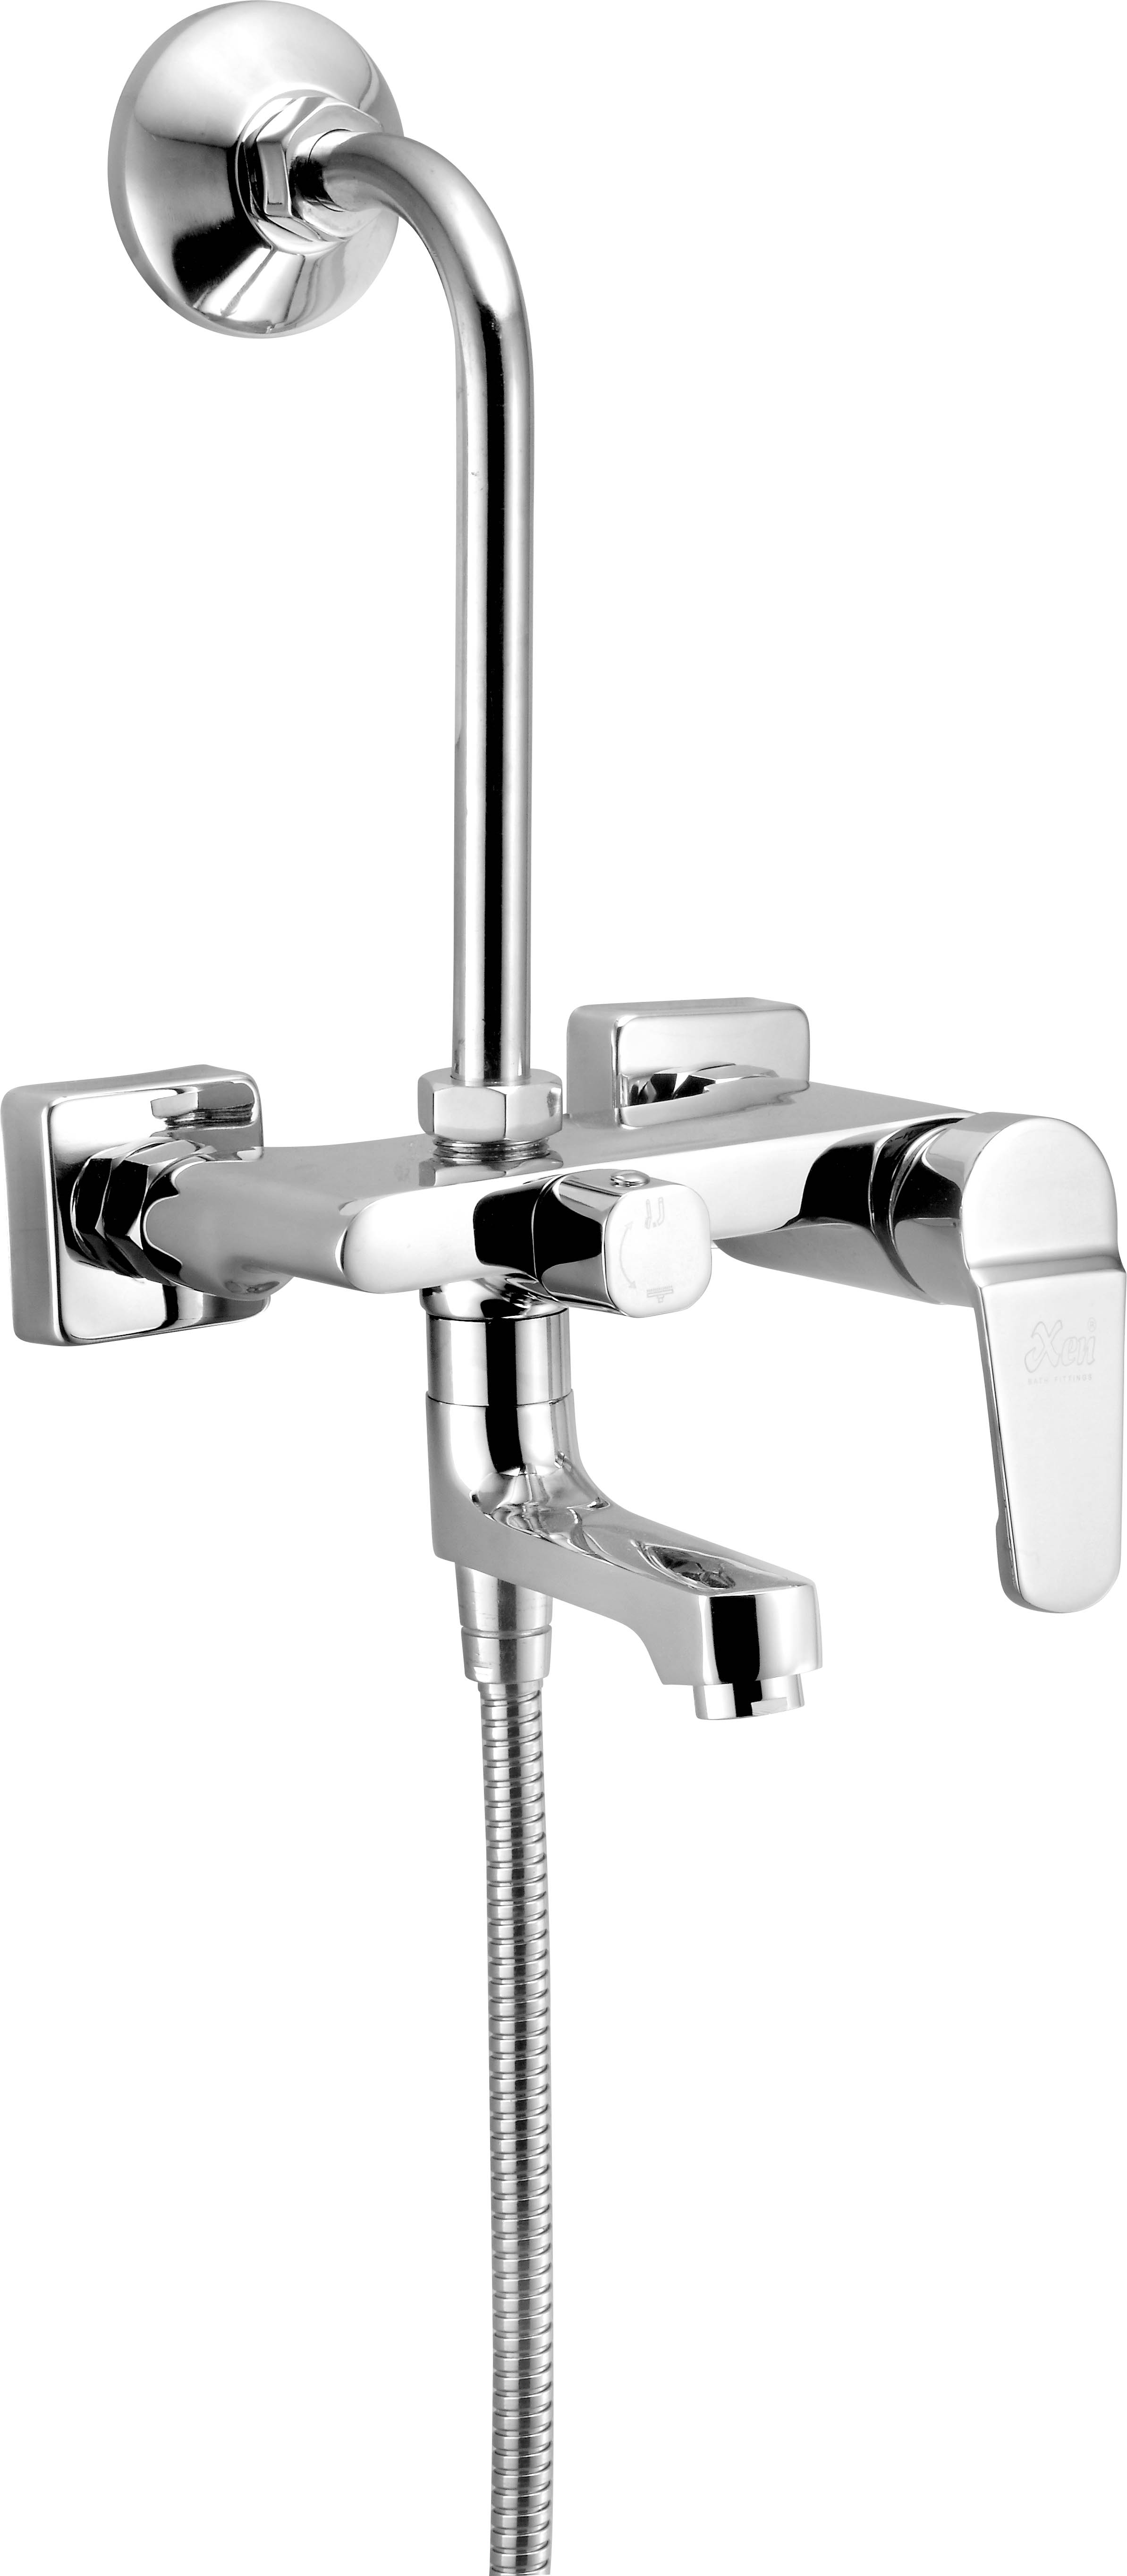 3 In 1 Wall Mixer Single Lever With Bend - Sporty